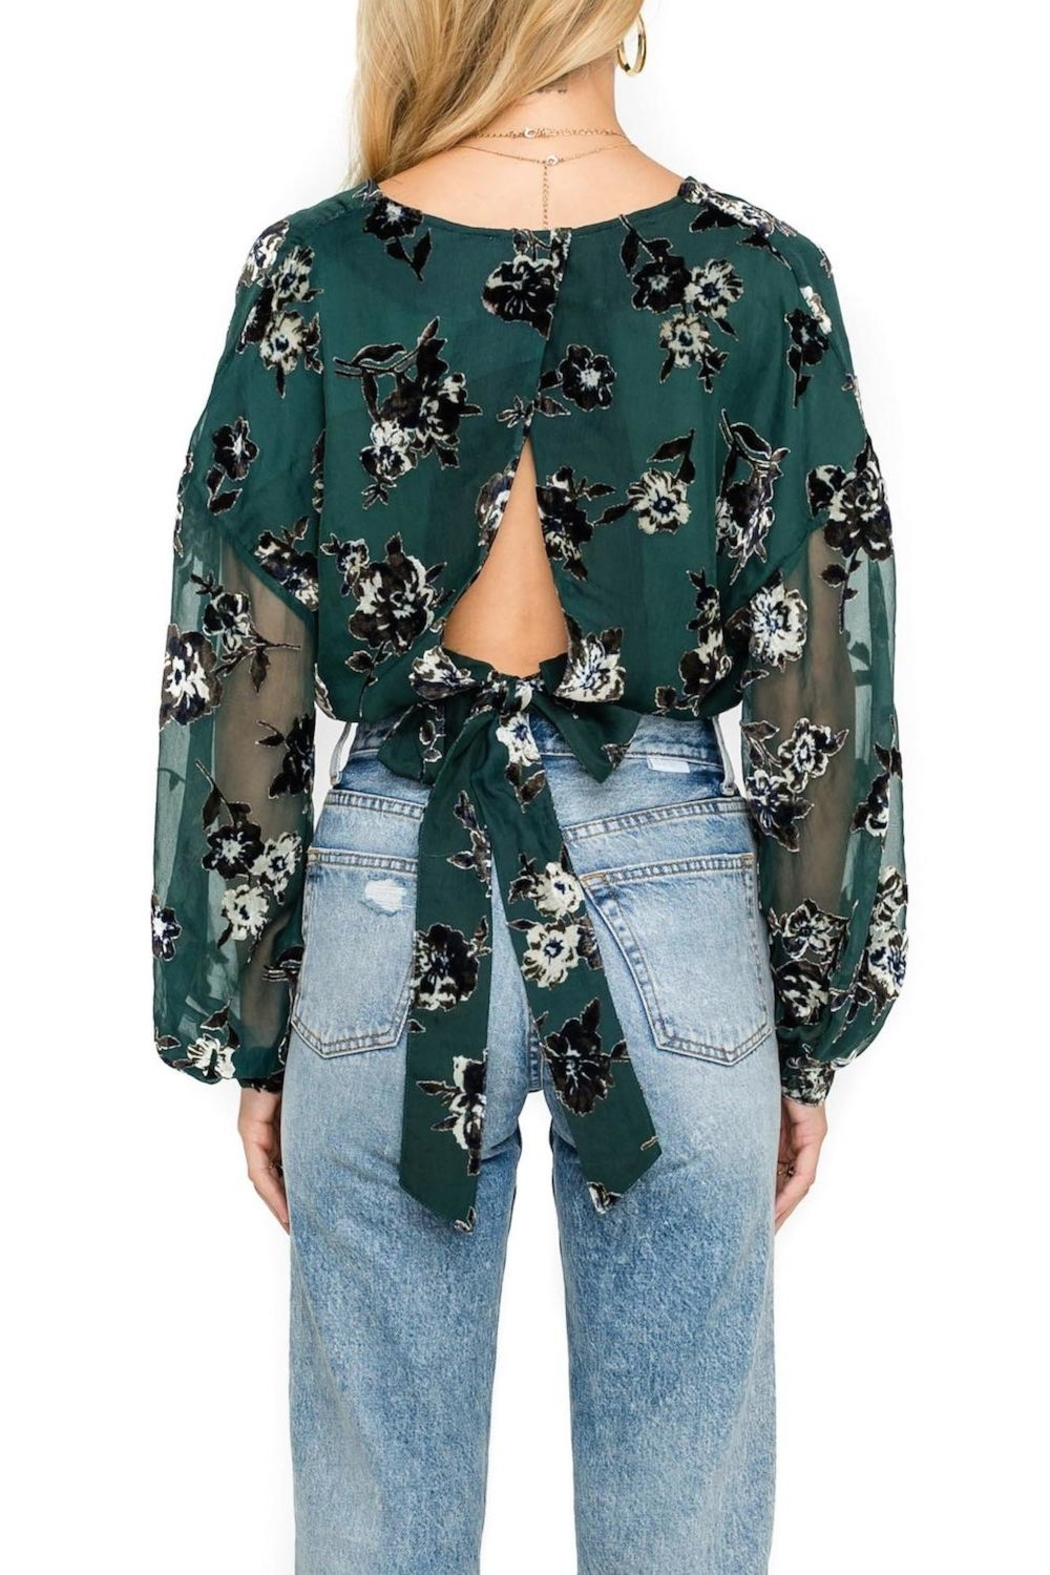 ASTR Green Floral Blouse - Side Cropped Image